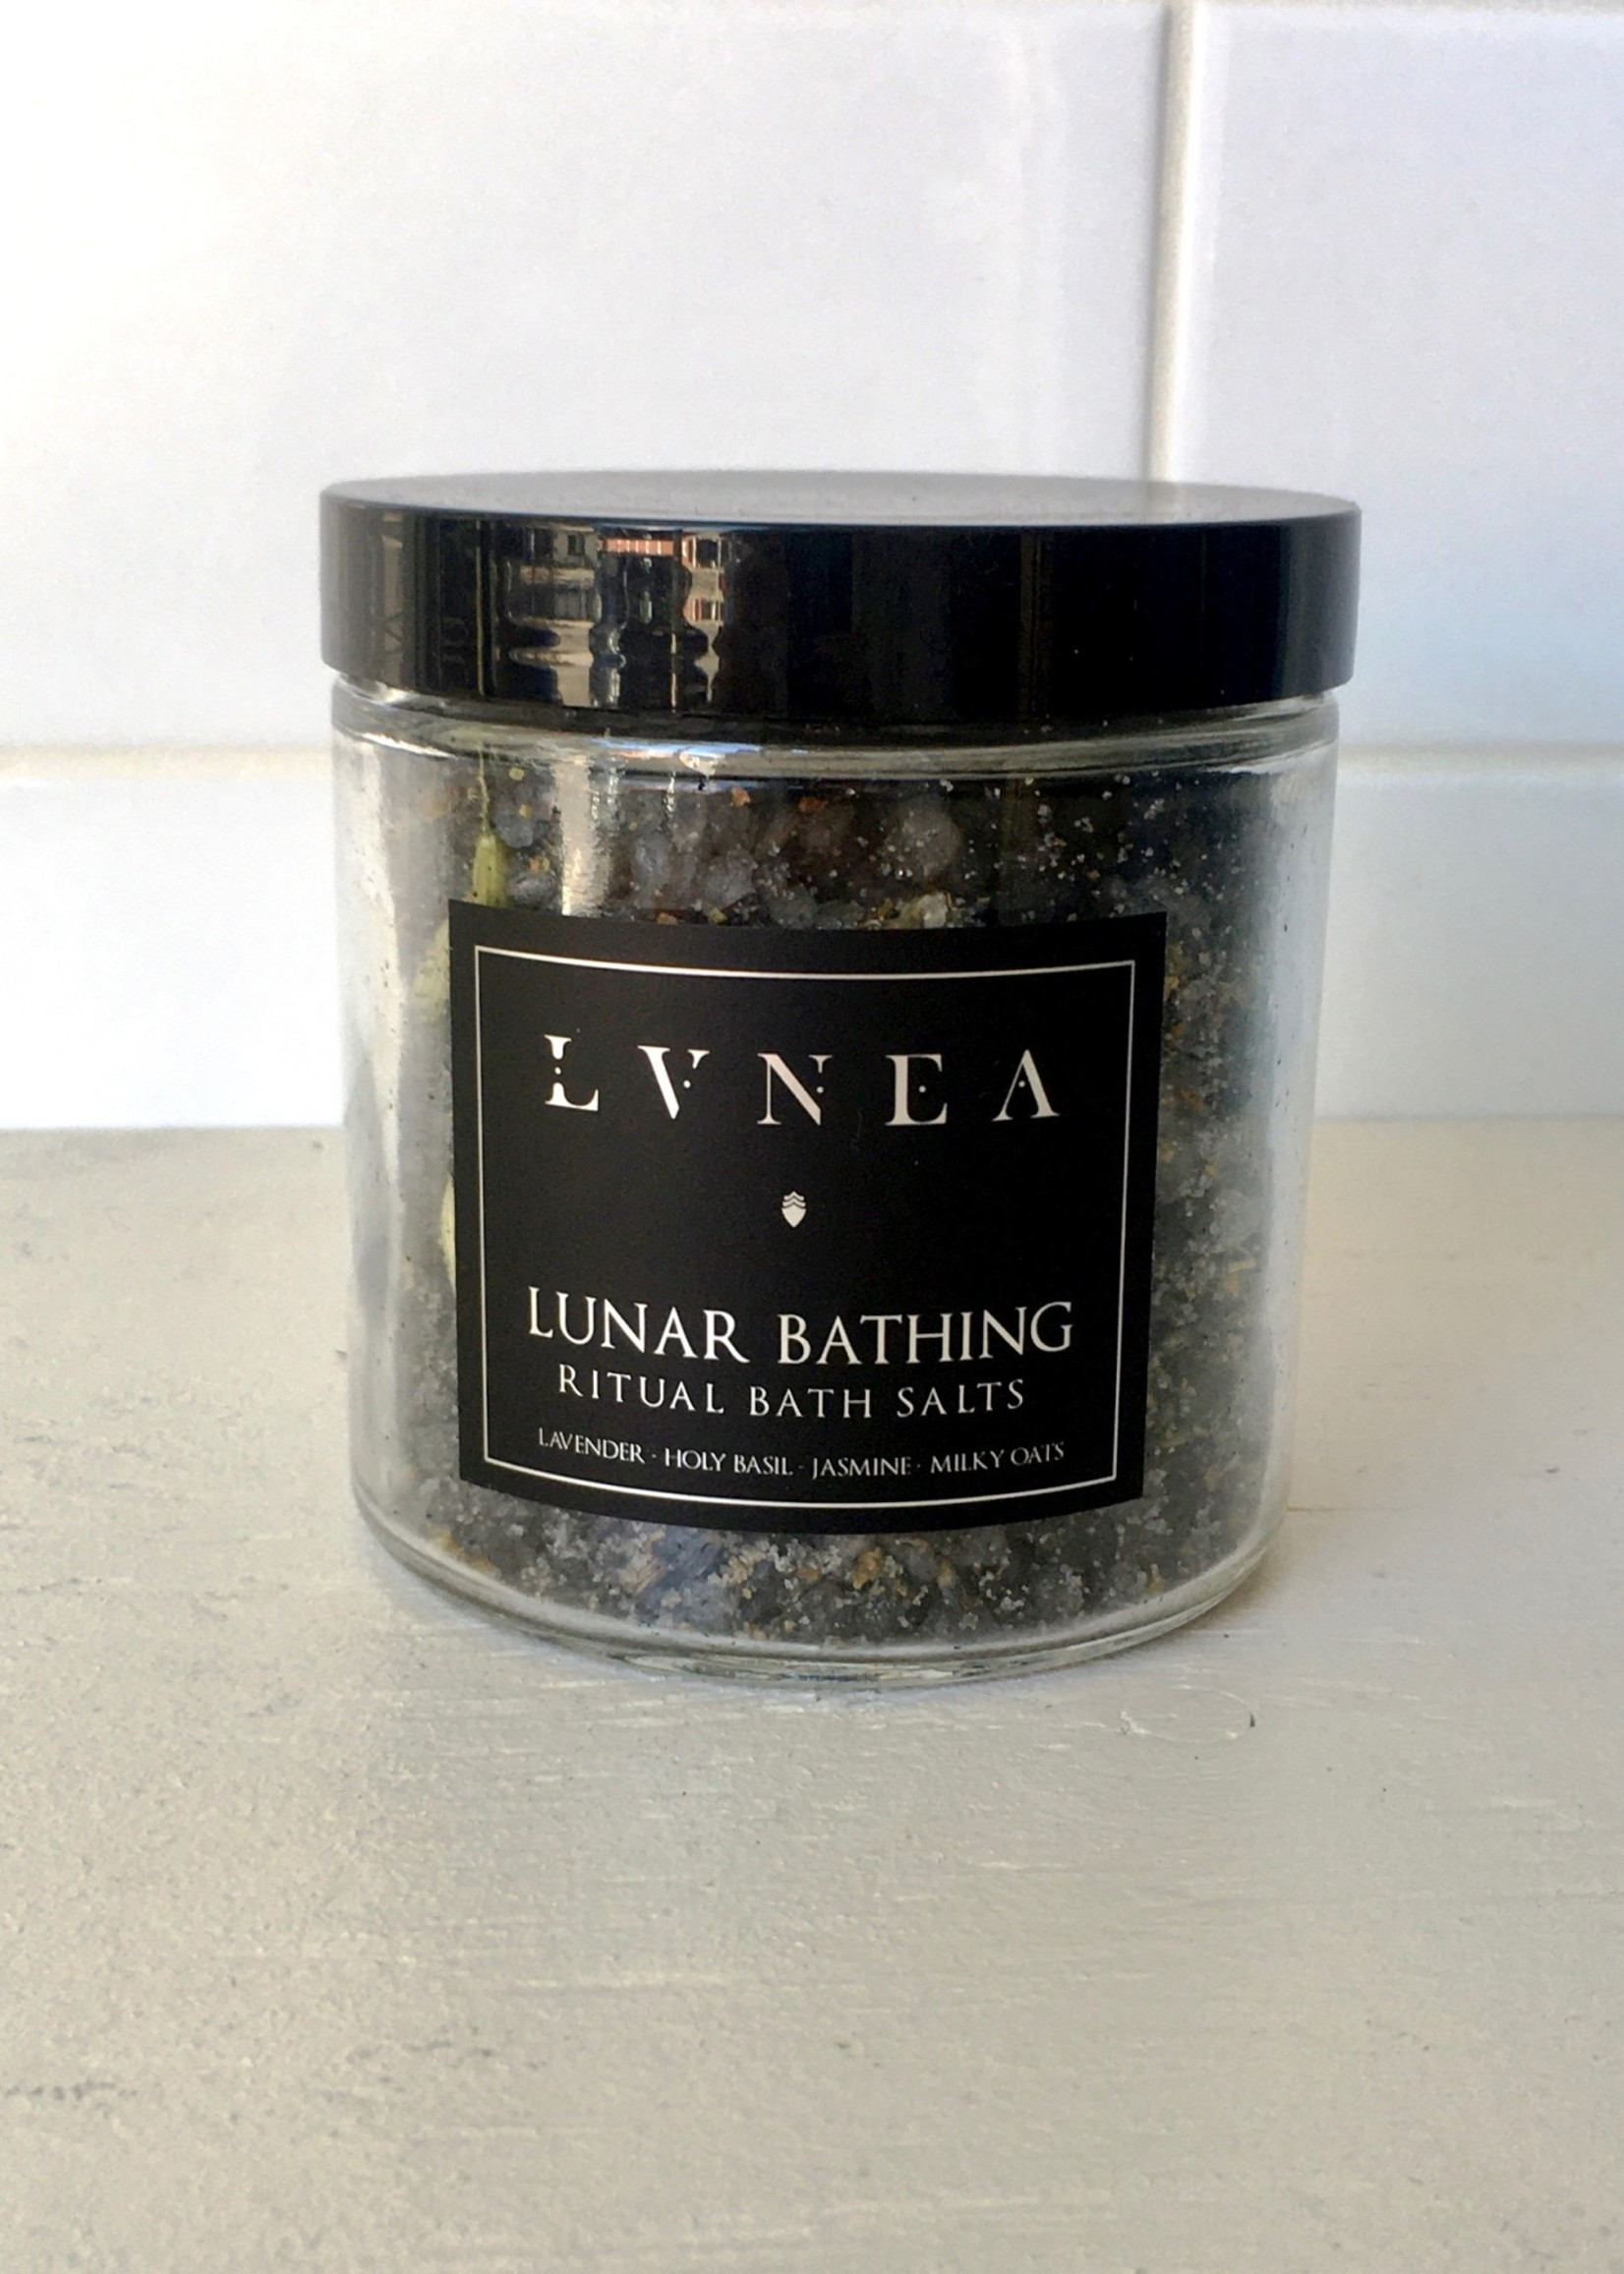 Lvnea Ritual Bathing Salts